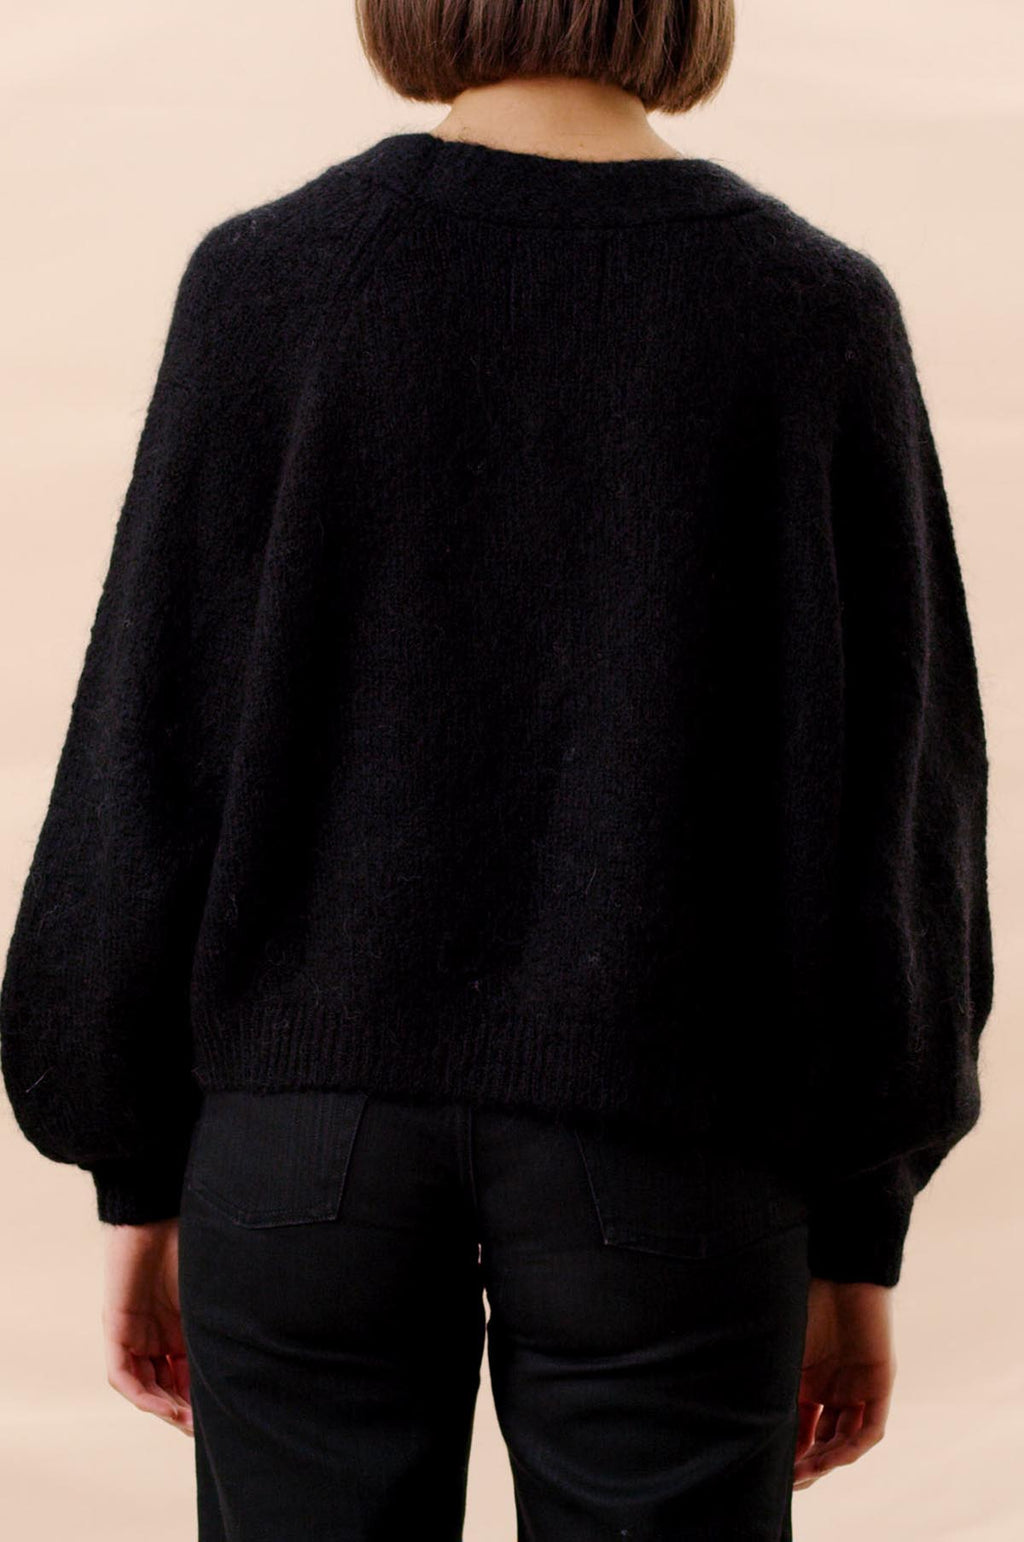 Hairy Knit Cardigan in Black